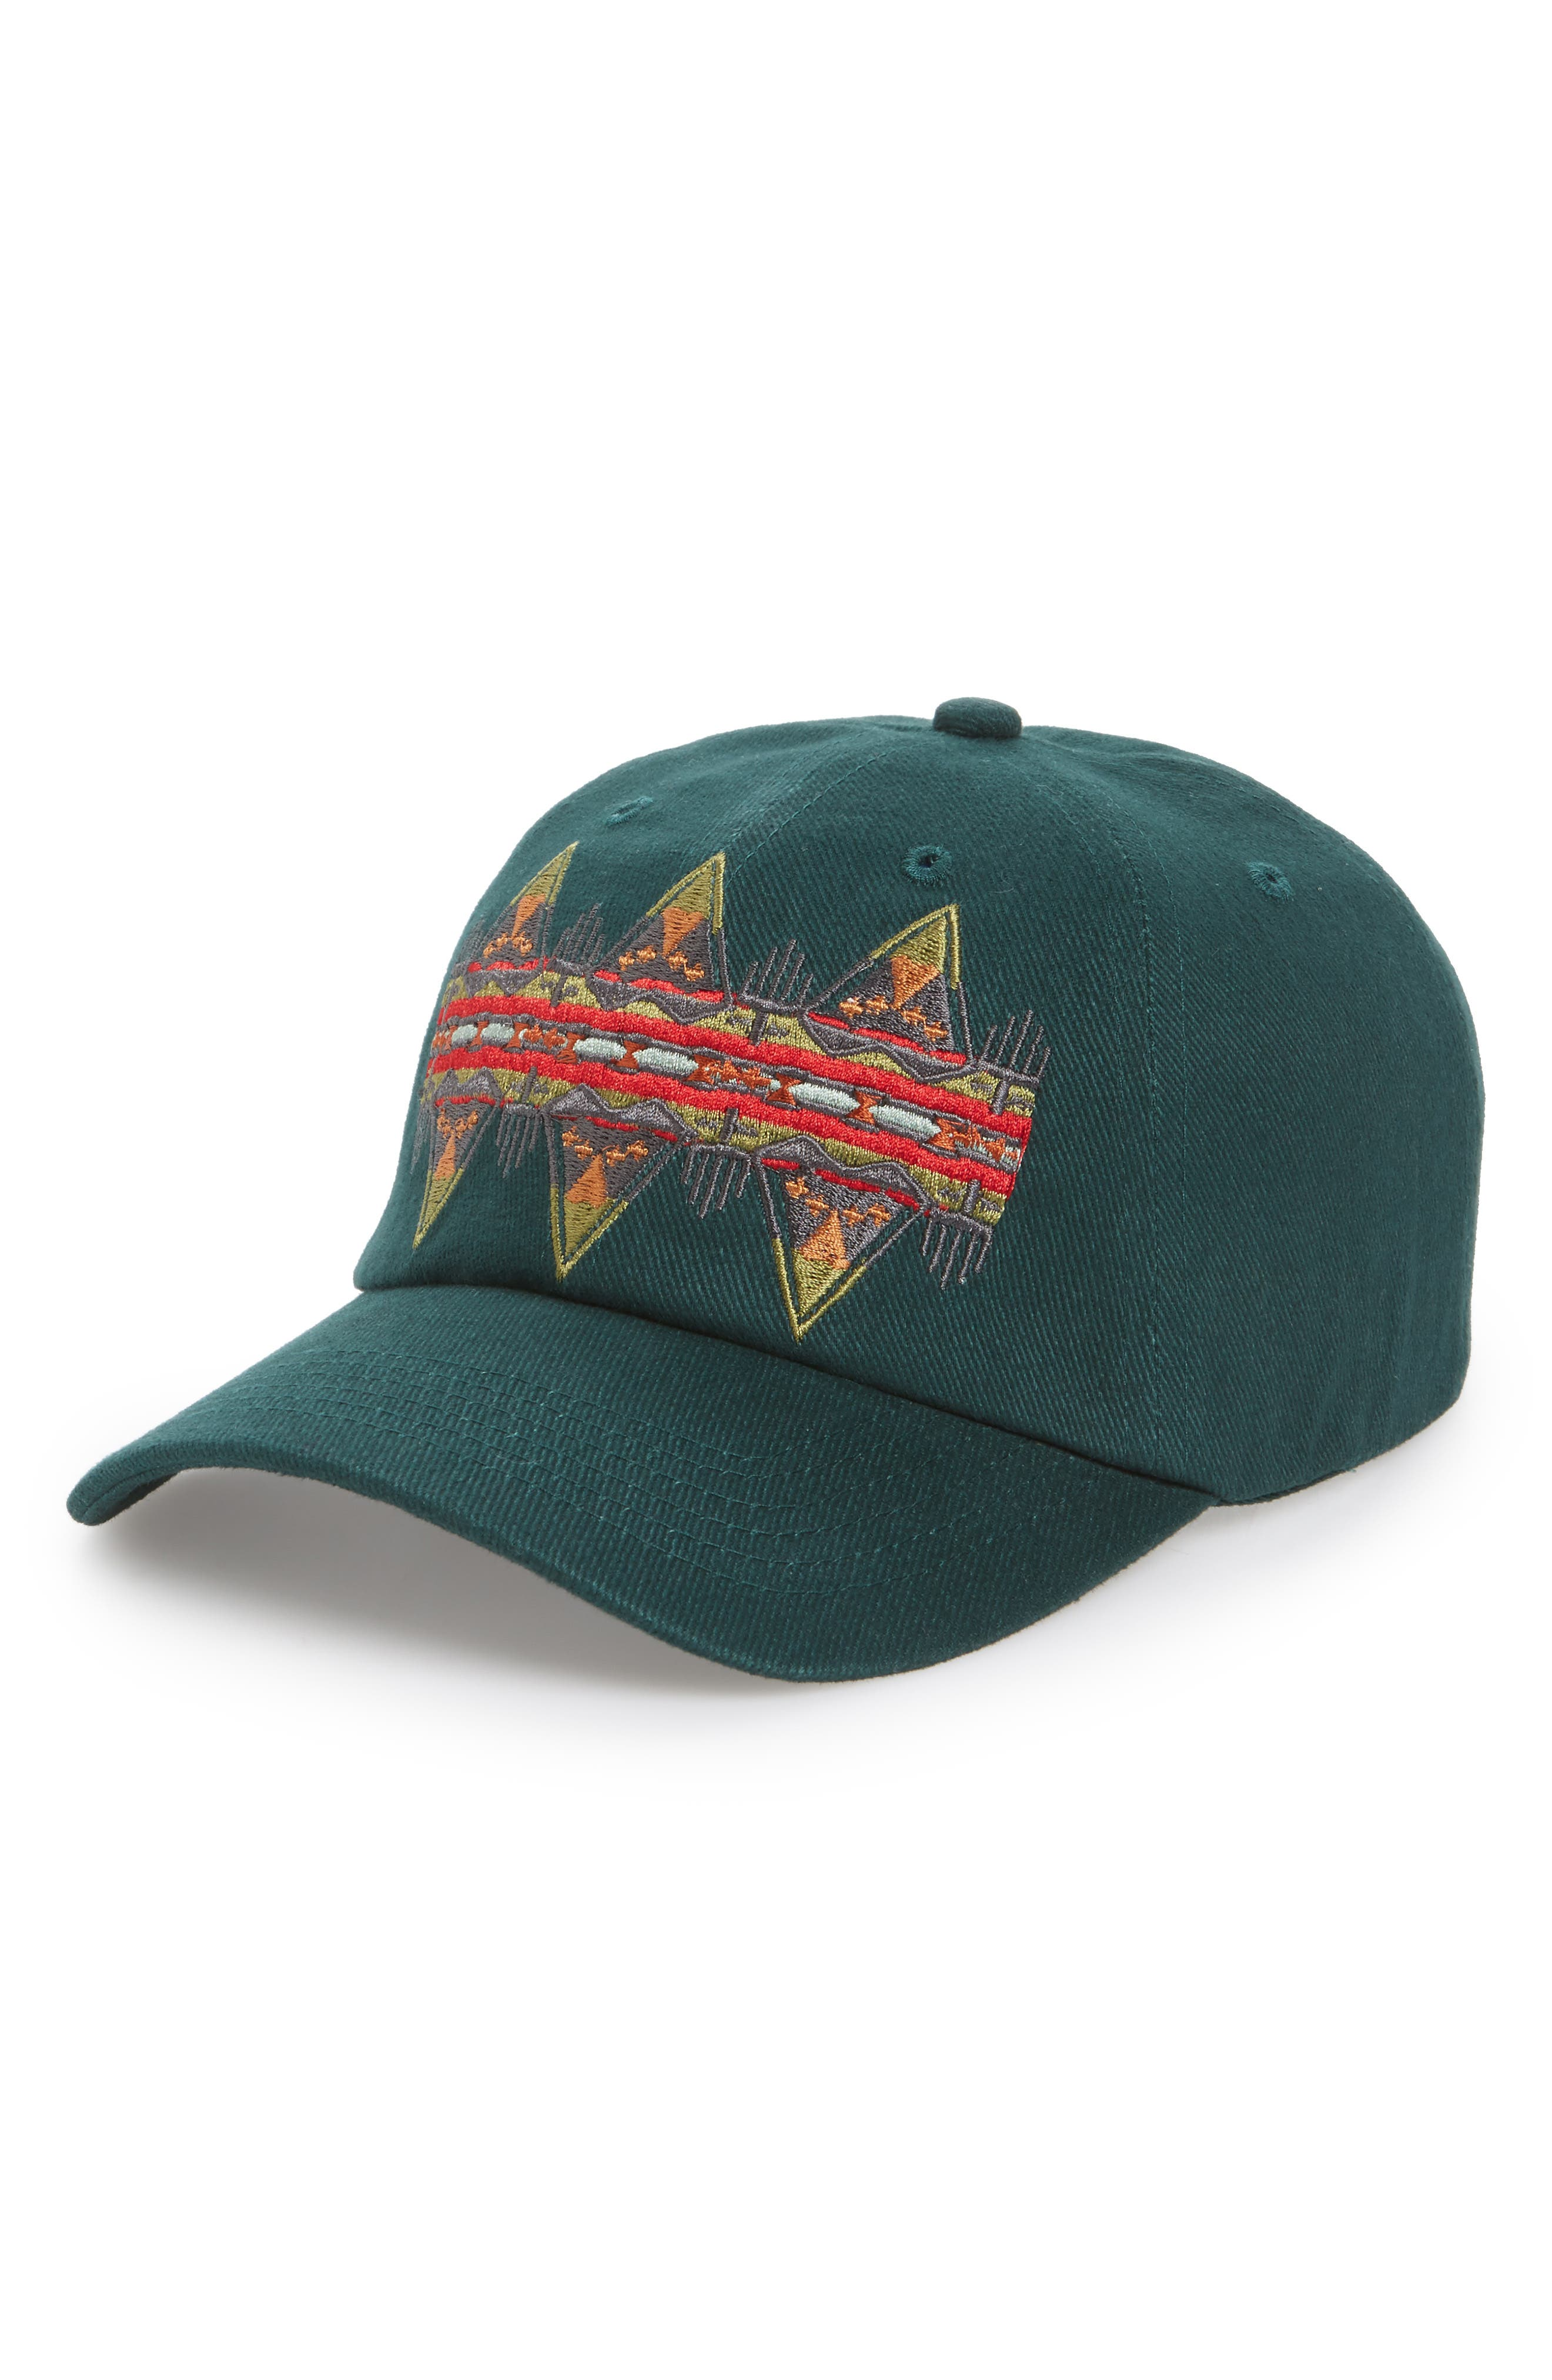 Embroidered Ball Cap,                         Main,                         color,